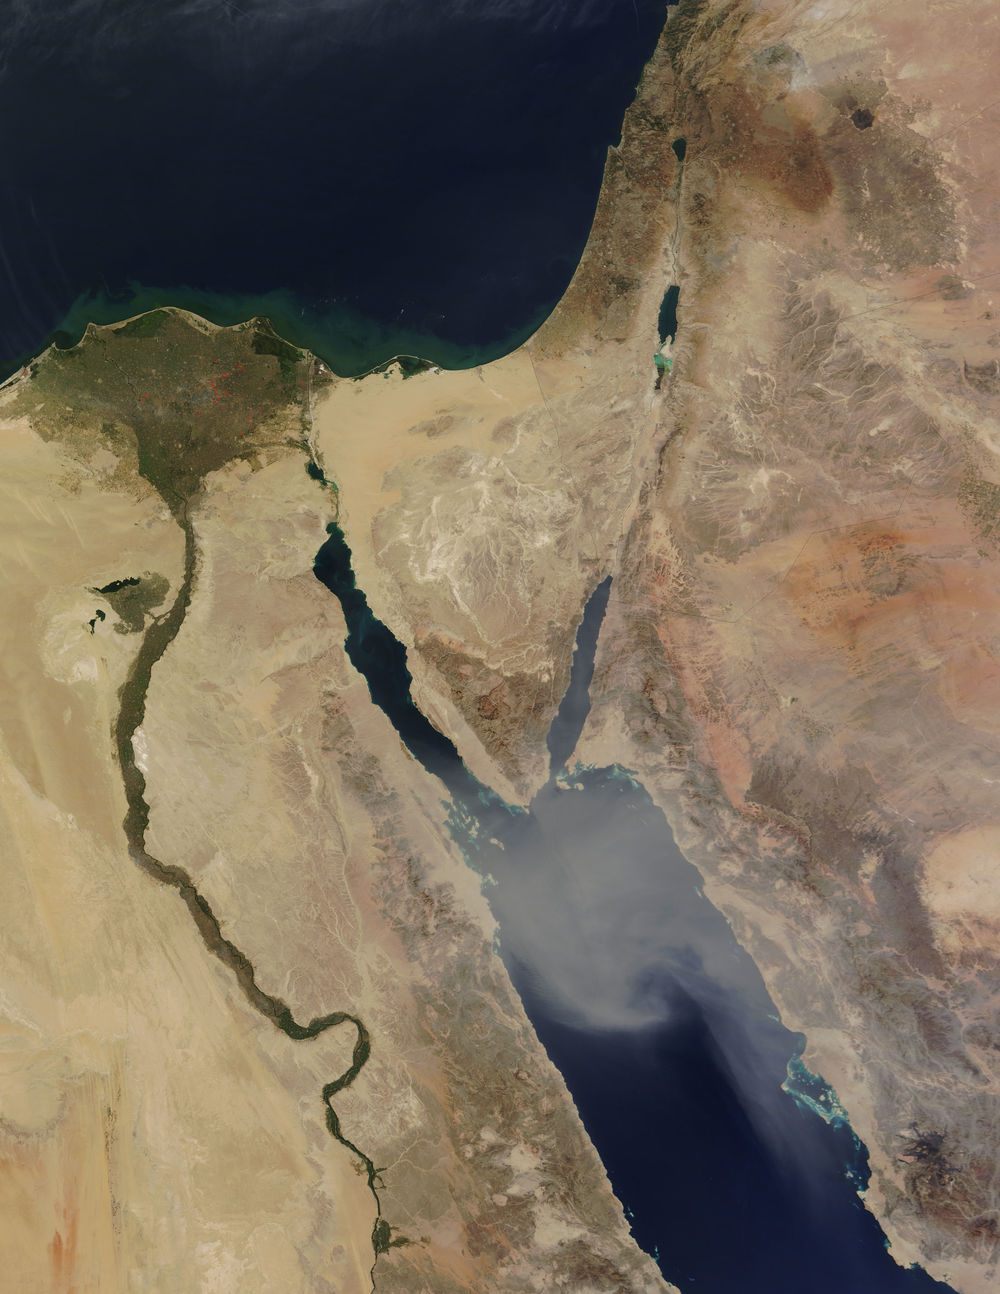 Threats against Israeli and Jews traveling abroad extend from areas as close to Israel as the Sinai Peninsula in Egypt (pictured) to as far away as the Philippines, parts of Africa, and a number of Western countries. Credit: Wikimedia Commons.